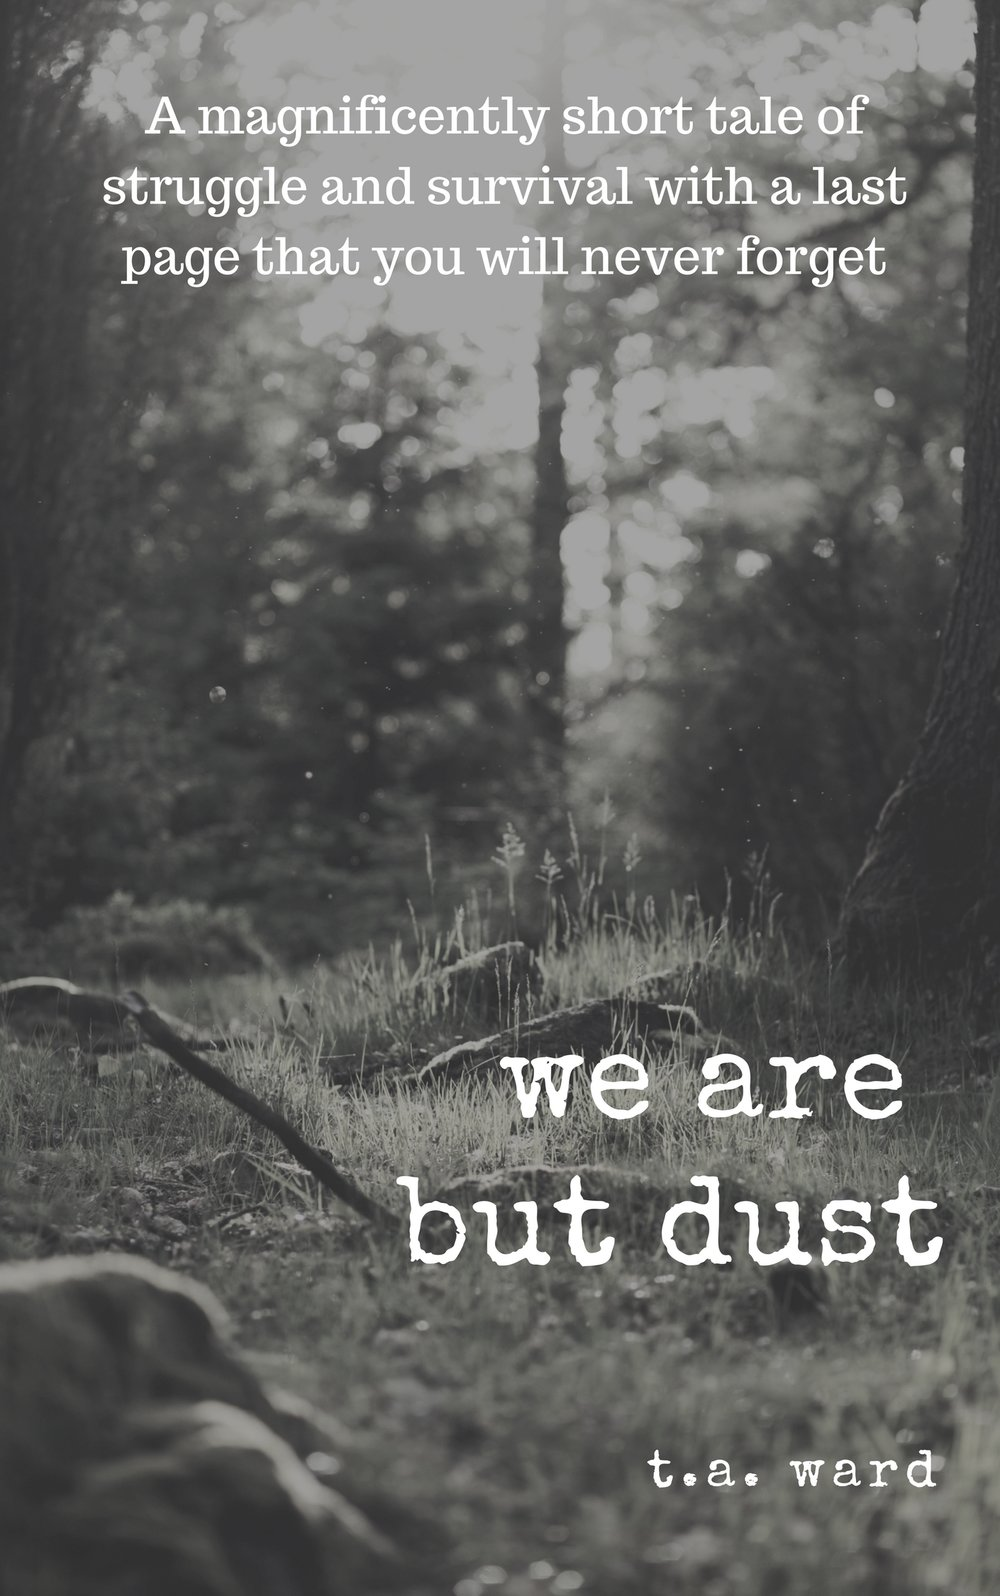 we are but dust (1).jpg